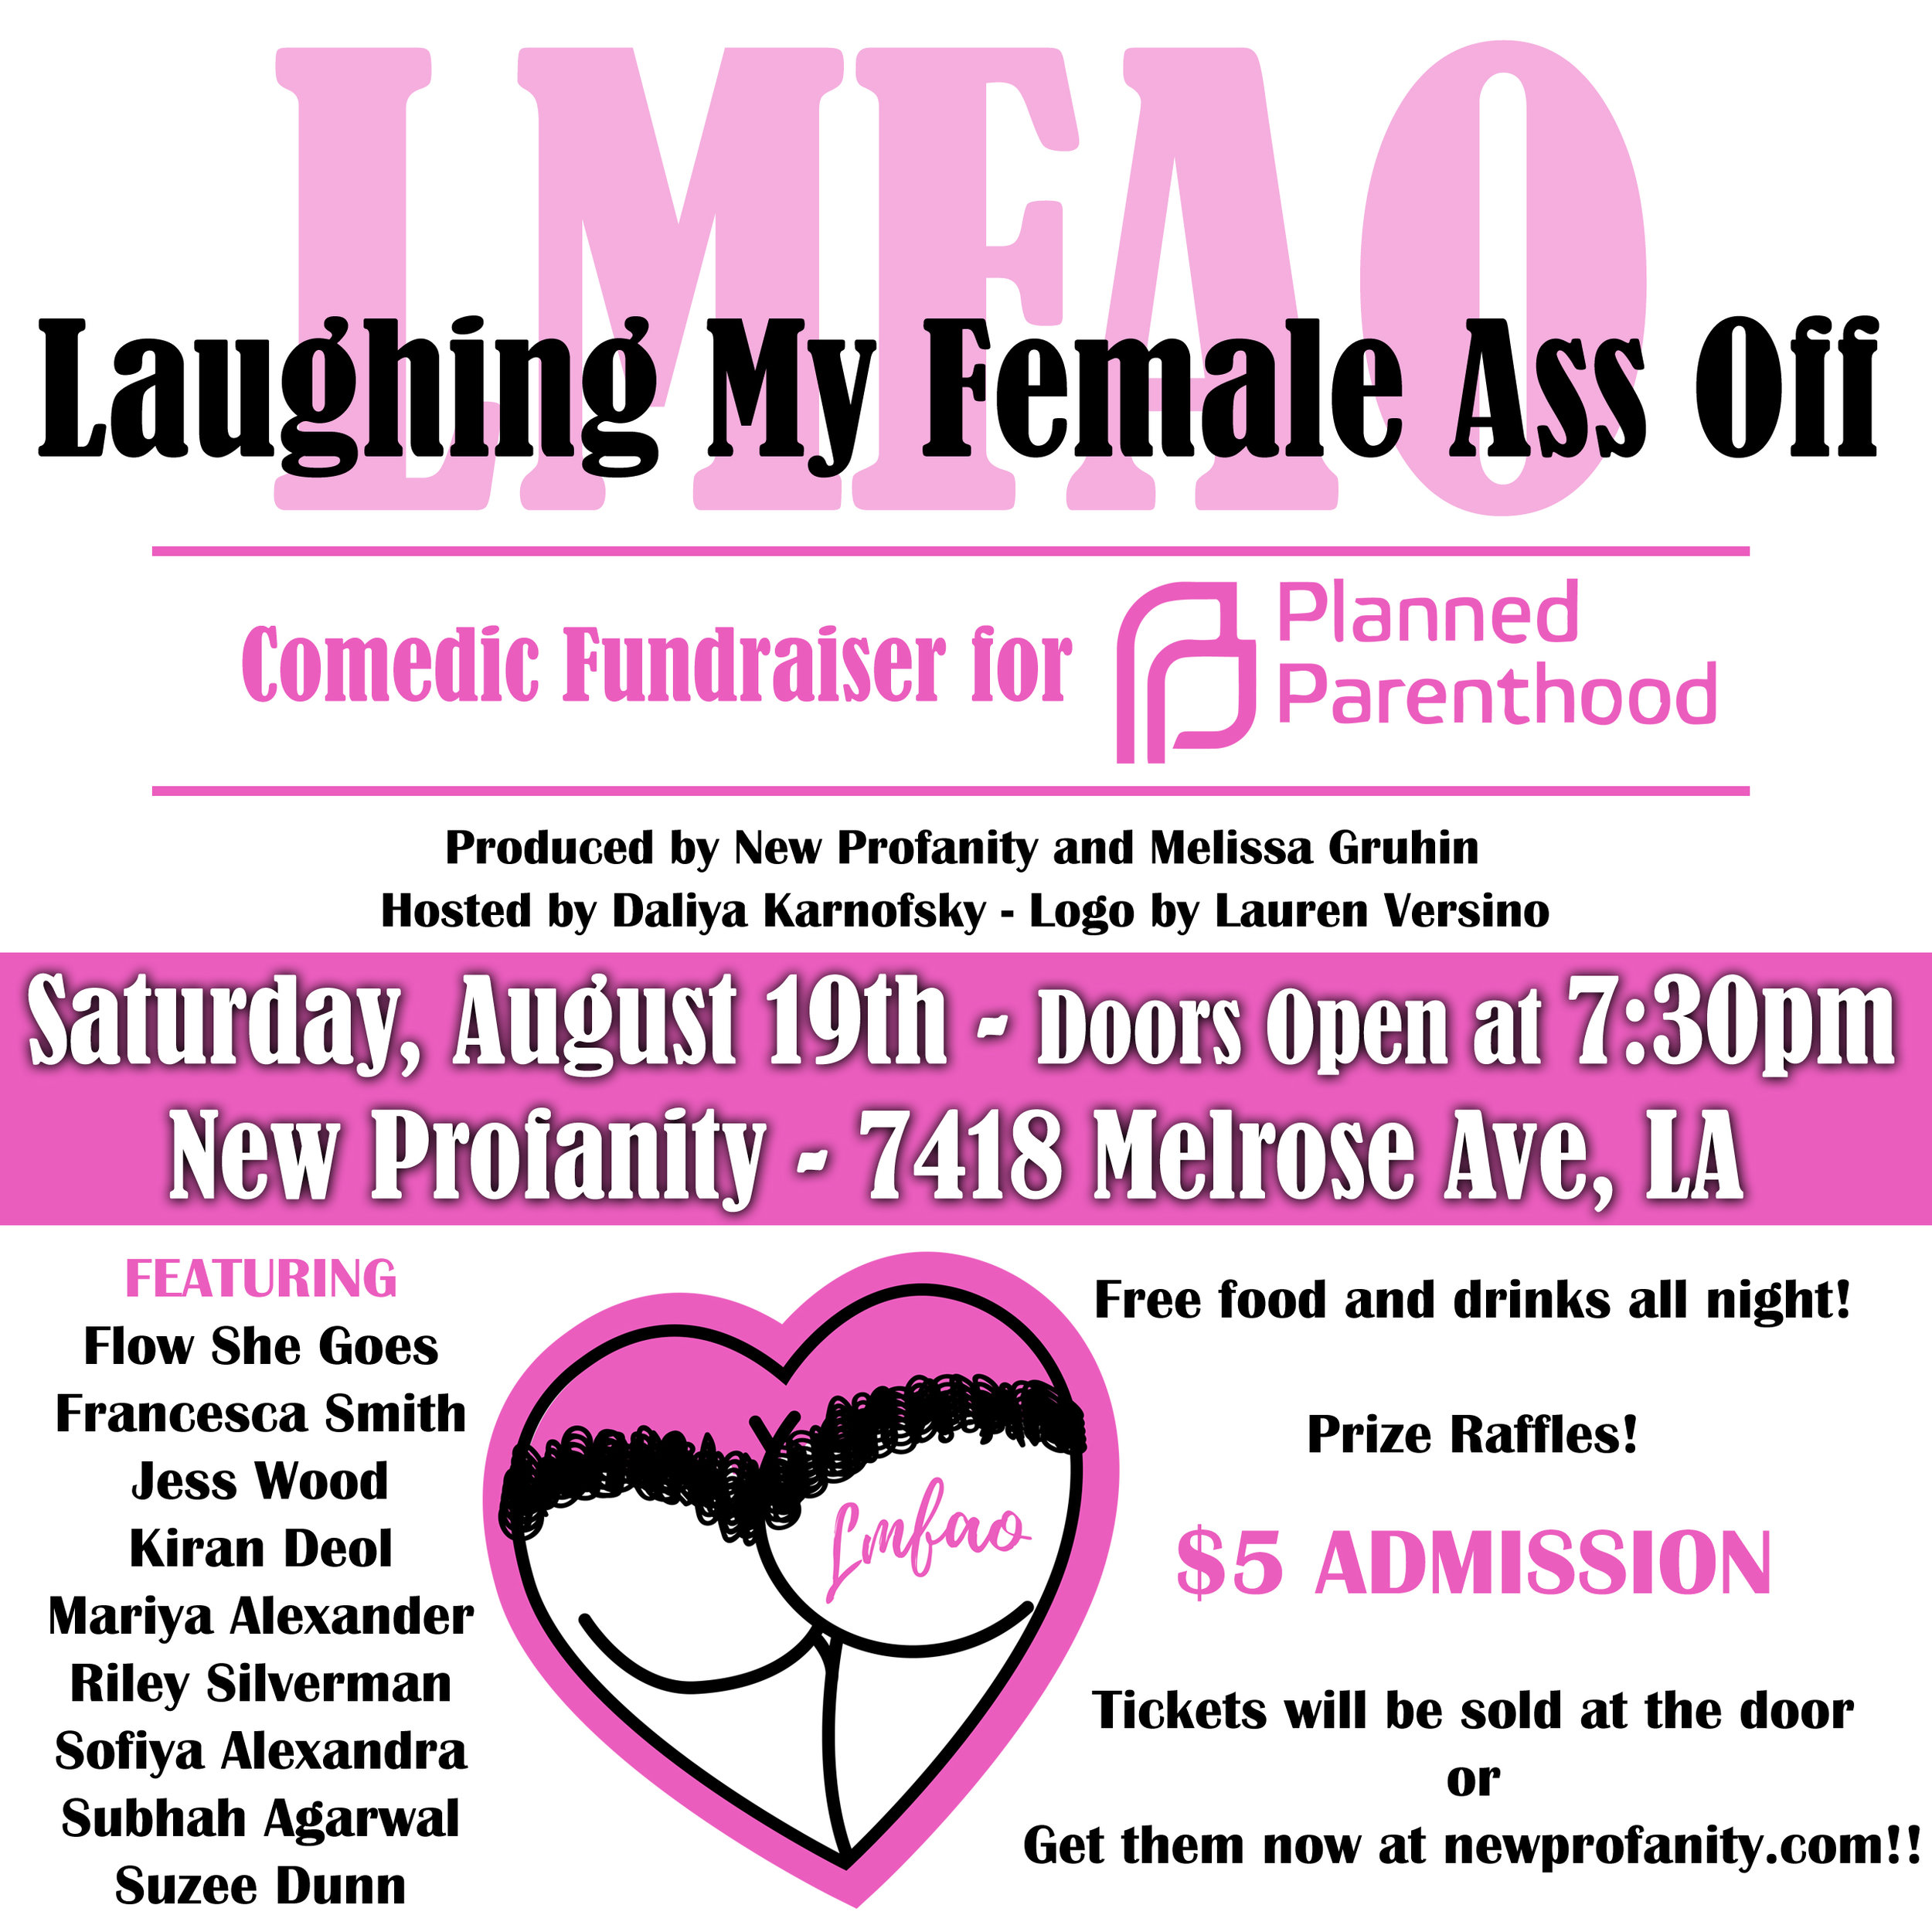 Laughing My Female Ass Off: A Comedy Event in Support of Planned Parenthood    →Event Producer (2017)